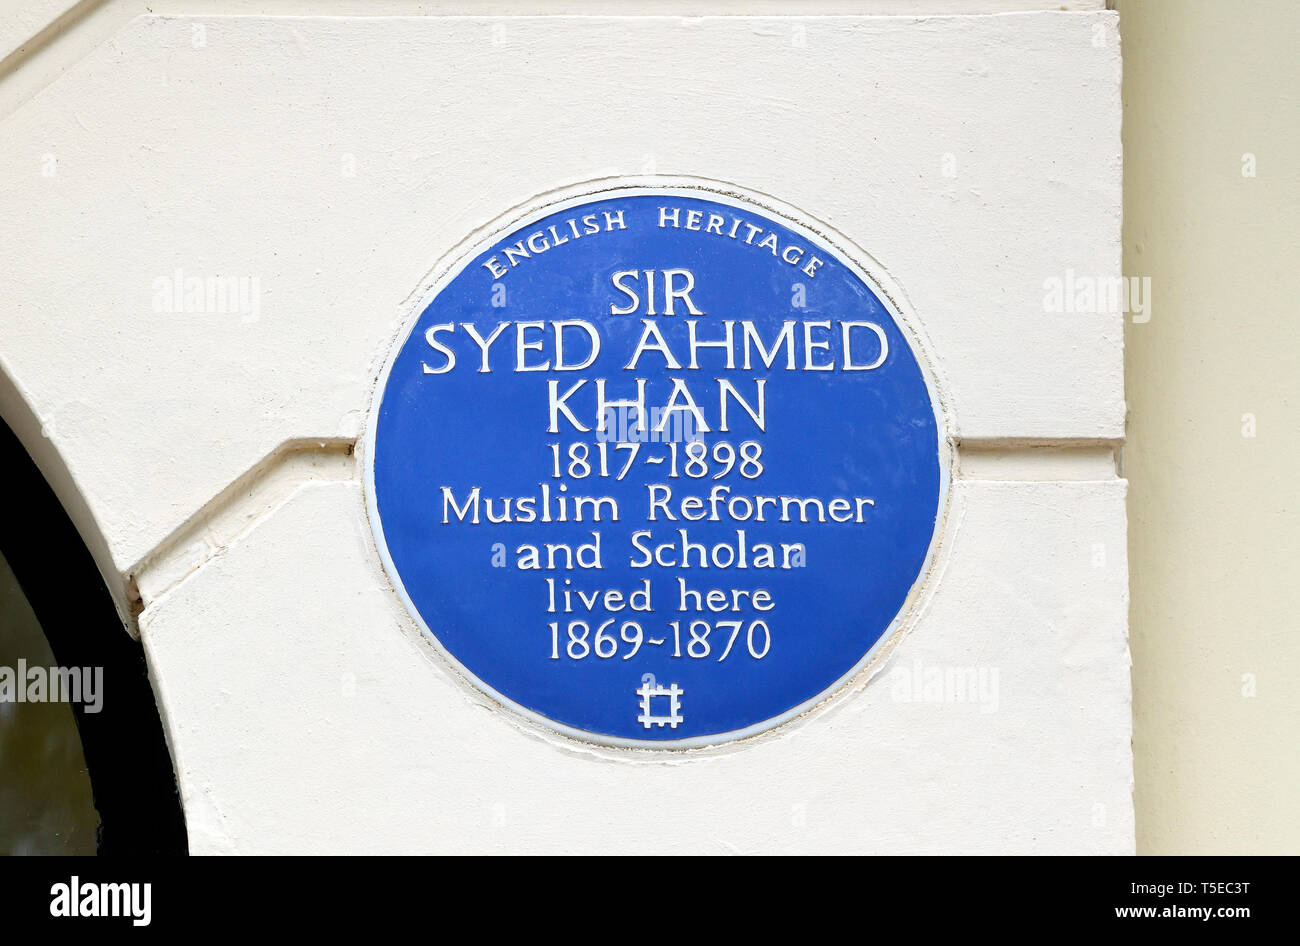 London, England, UK. Commemorative Blue Plaque: Sir Syed Ahmed Khan 1817-1898 Muslim reformer and scholar lived here 1869-1870 - 21 Mecklenburgh Squar - Stock Image